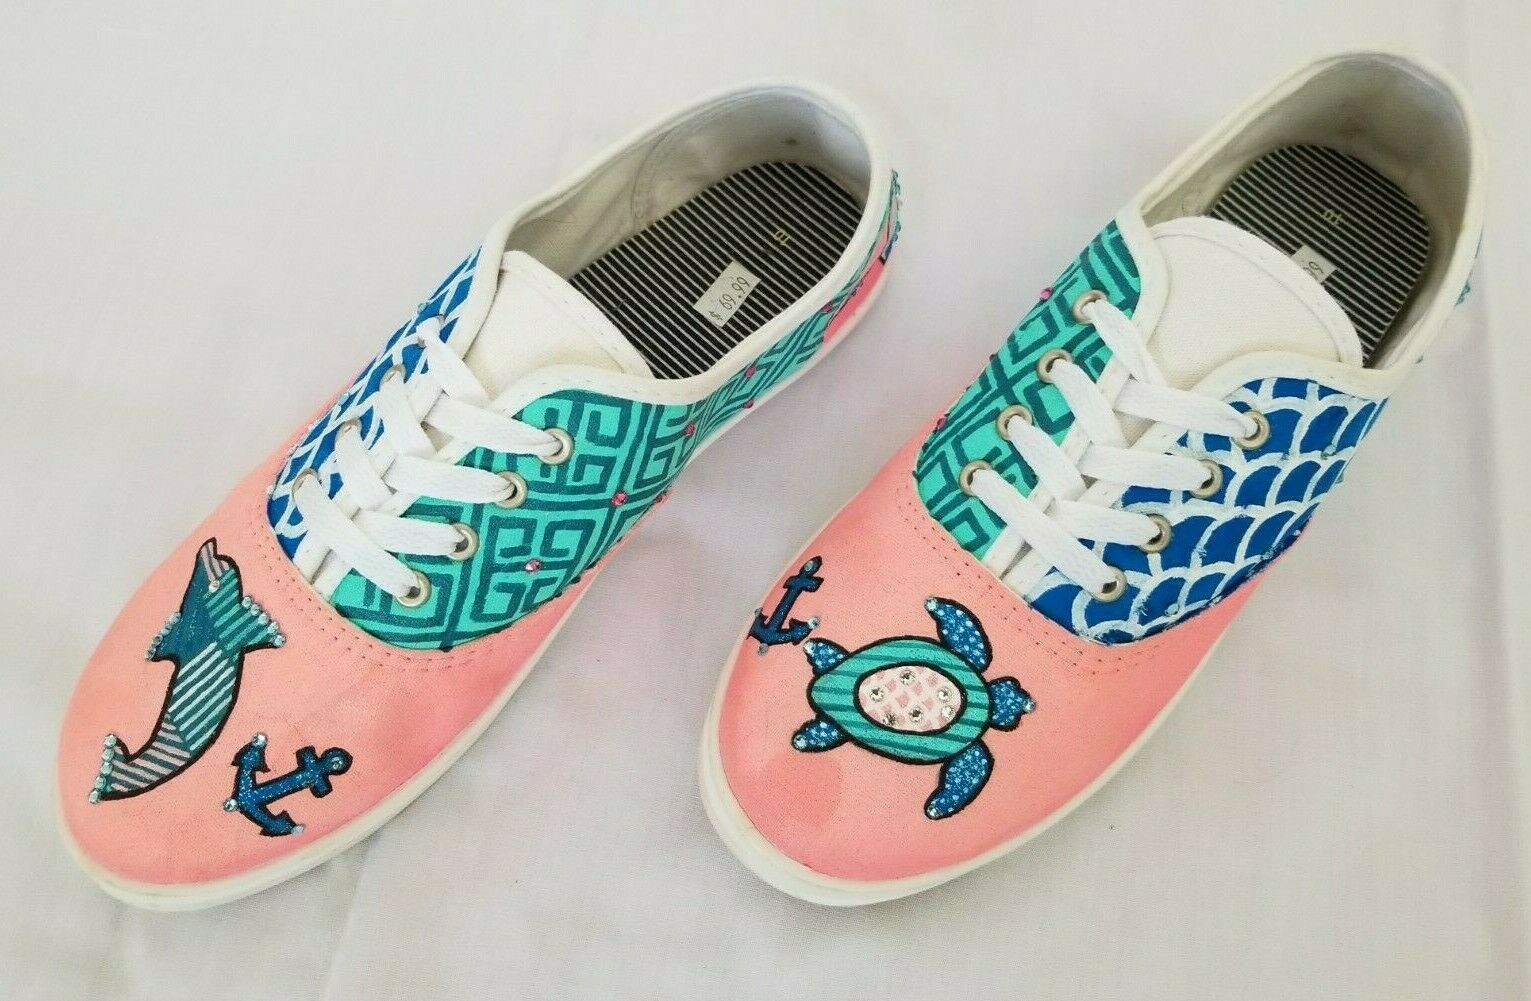 Womens Size 10 Multicolor Hand Painted and Decorated Canvas shoes preowned